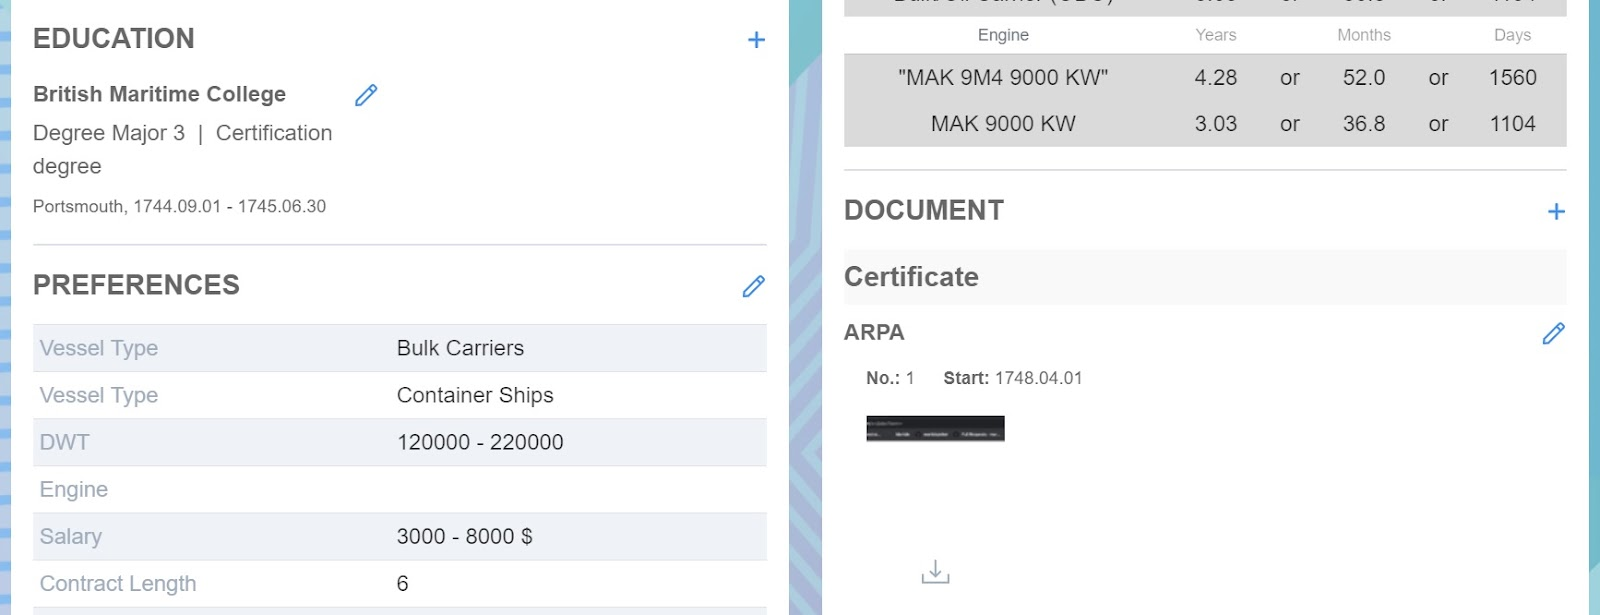 Screenshot of Martide website showing the seafarer's education and documents